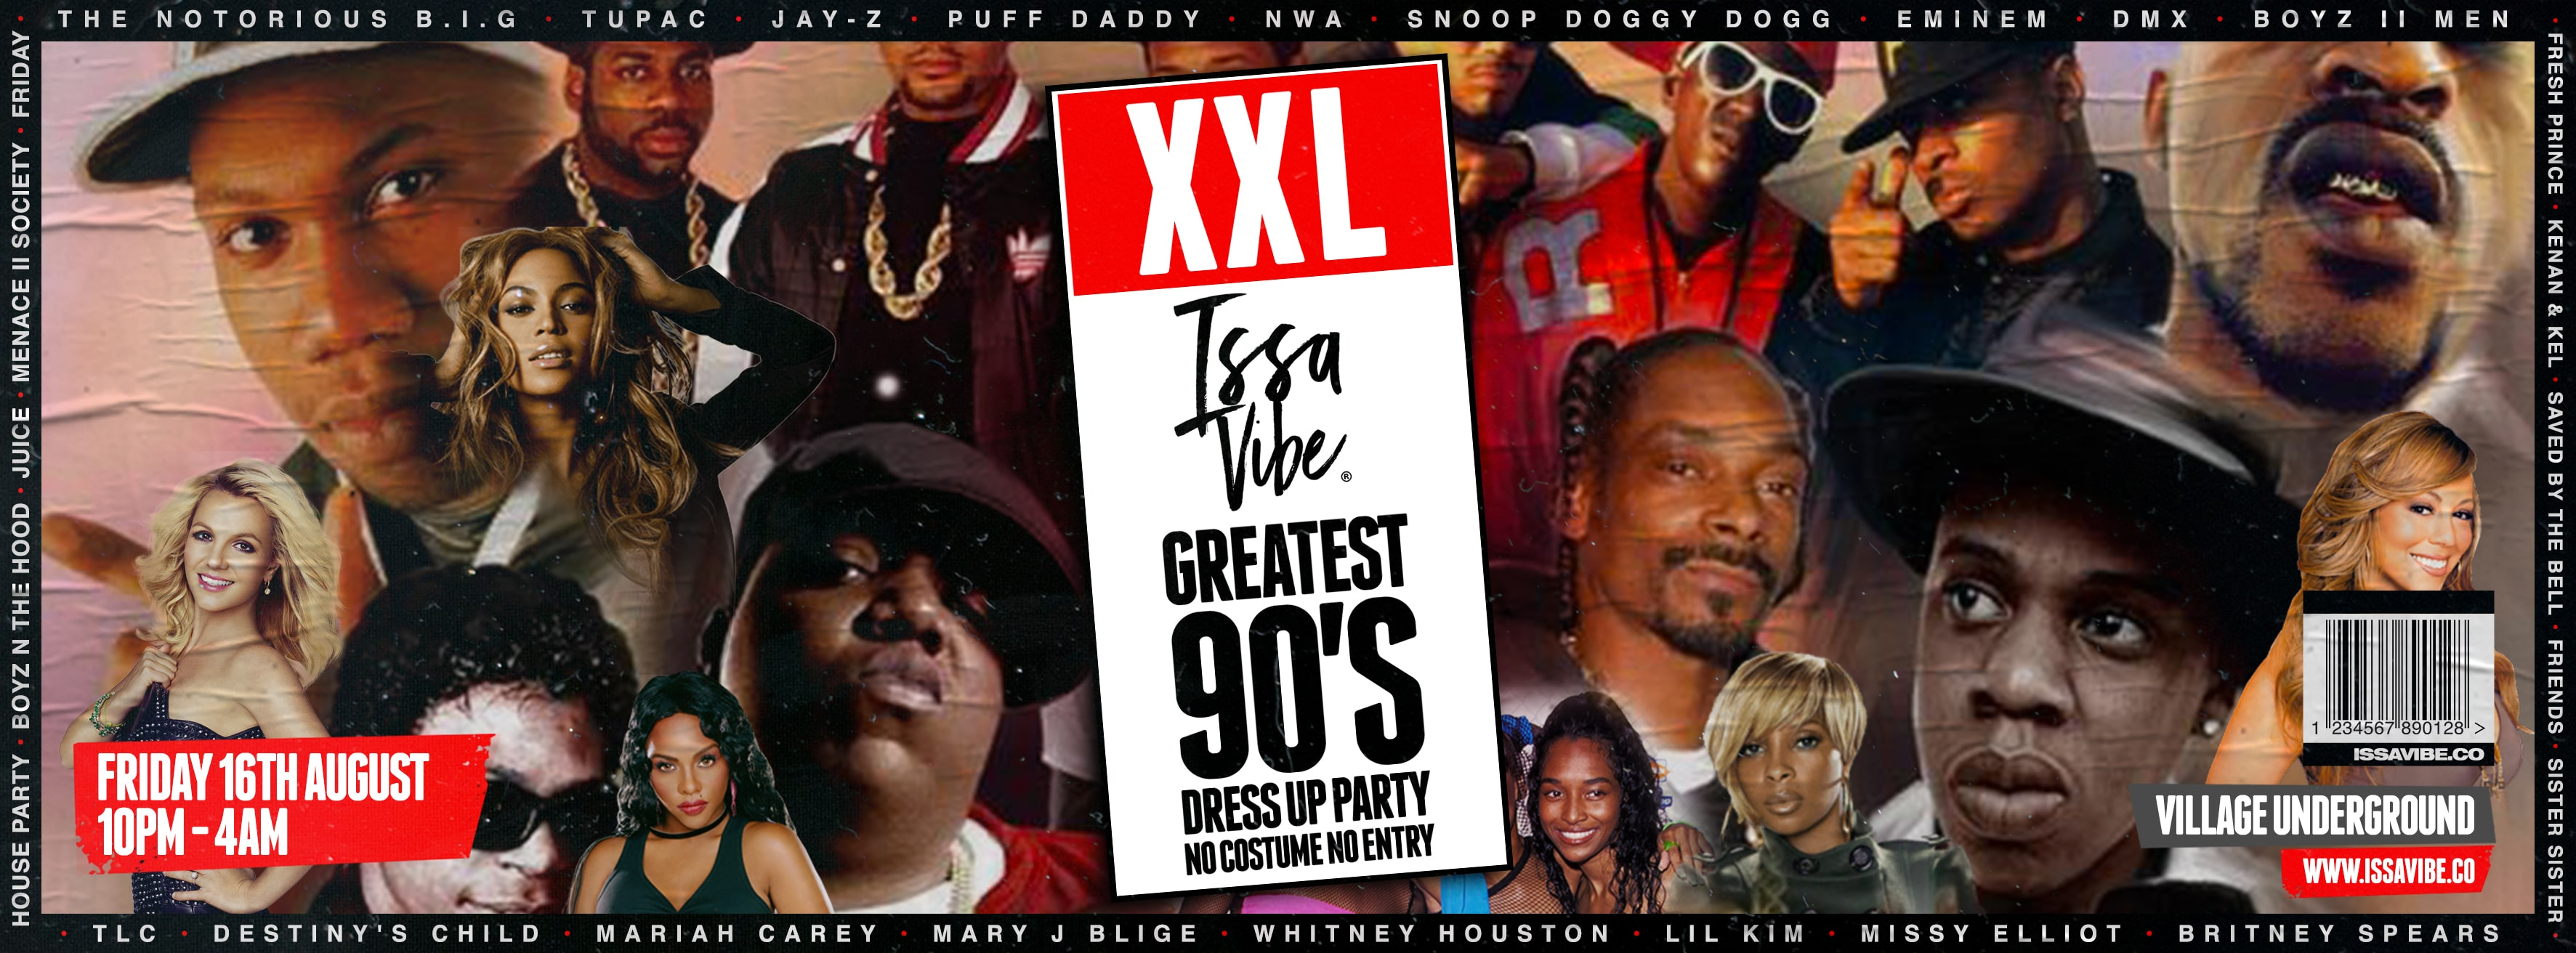 Issa Vibe Presents: XXL 90's Costume Party